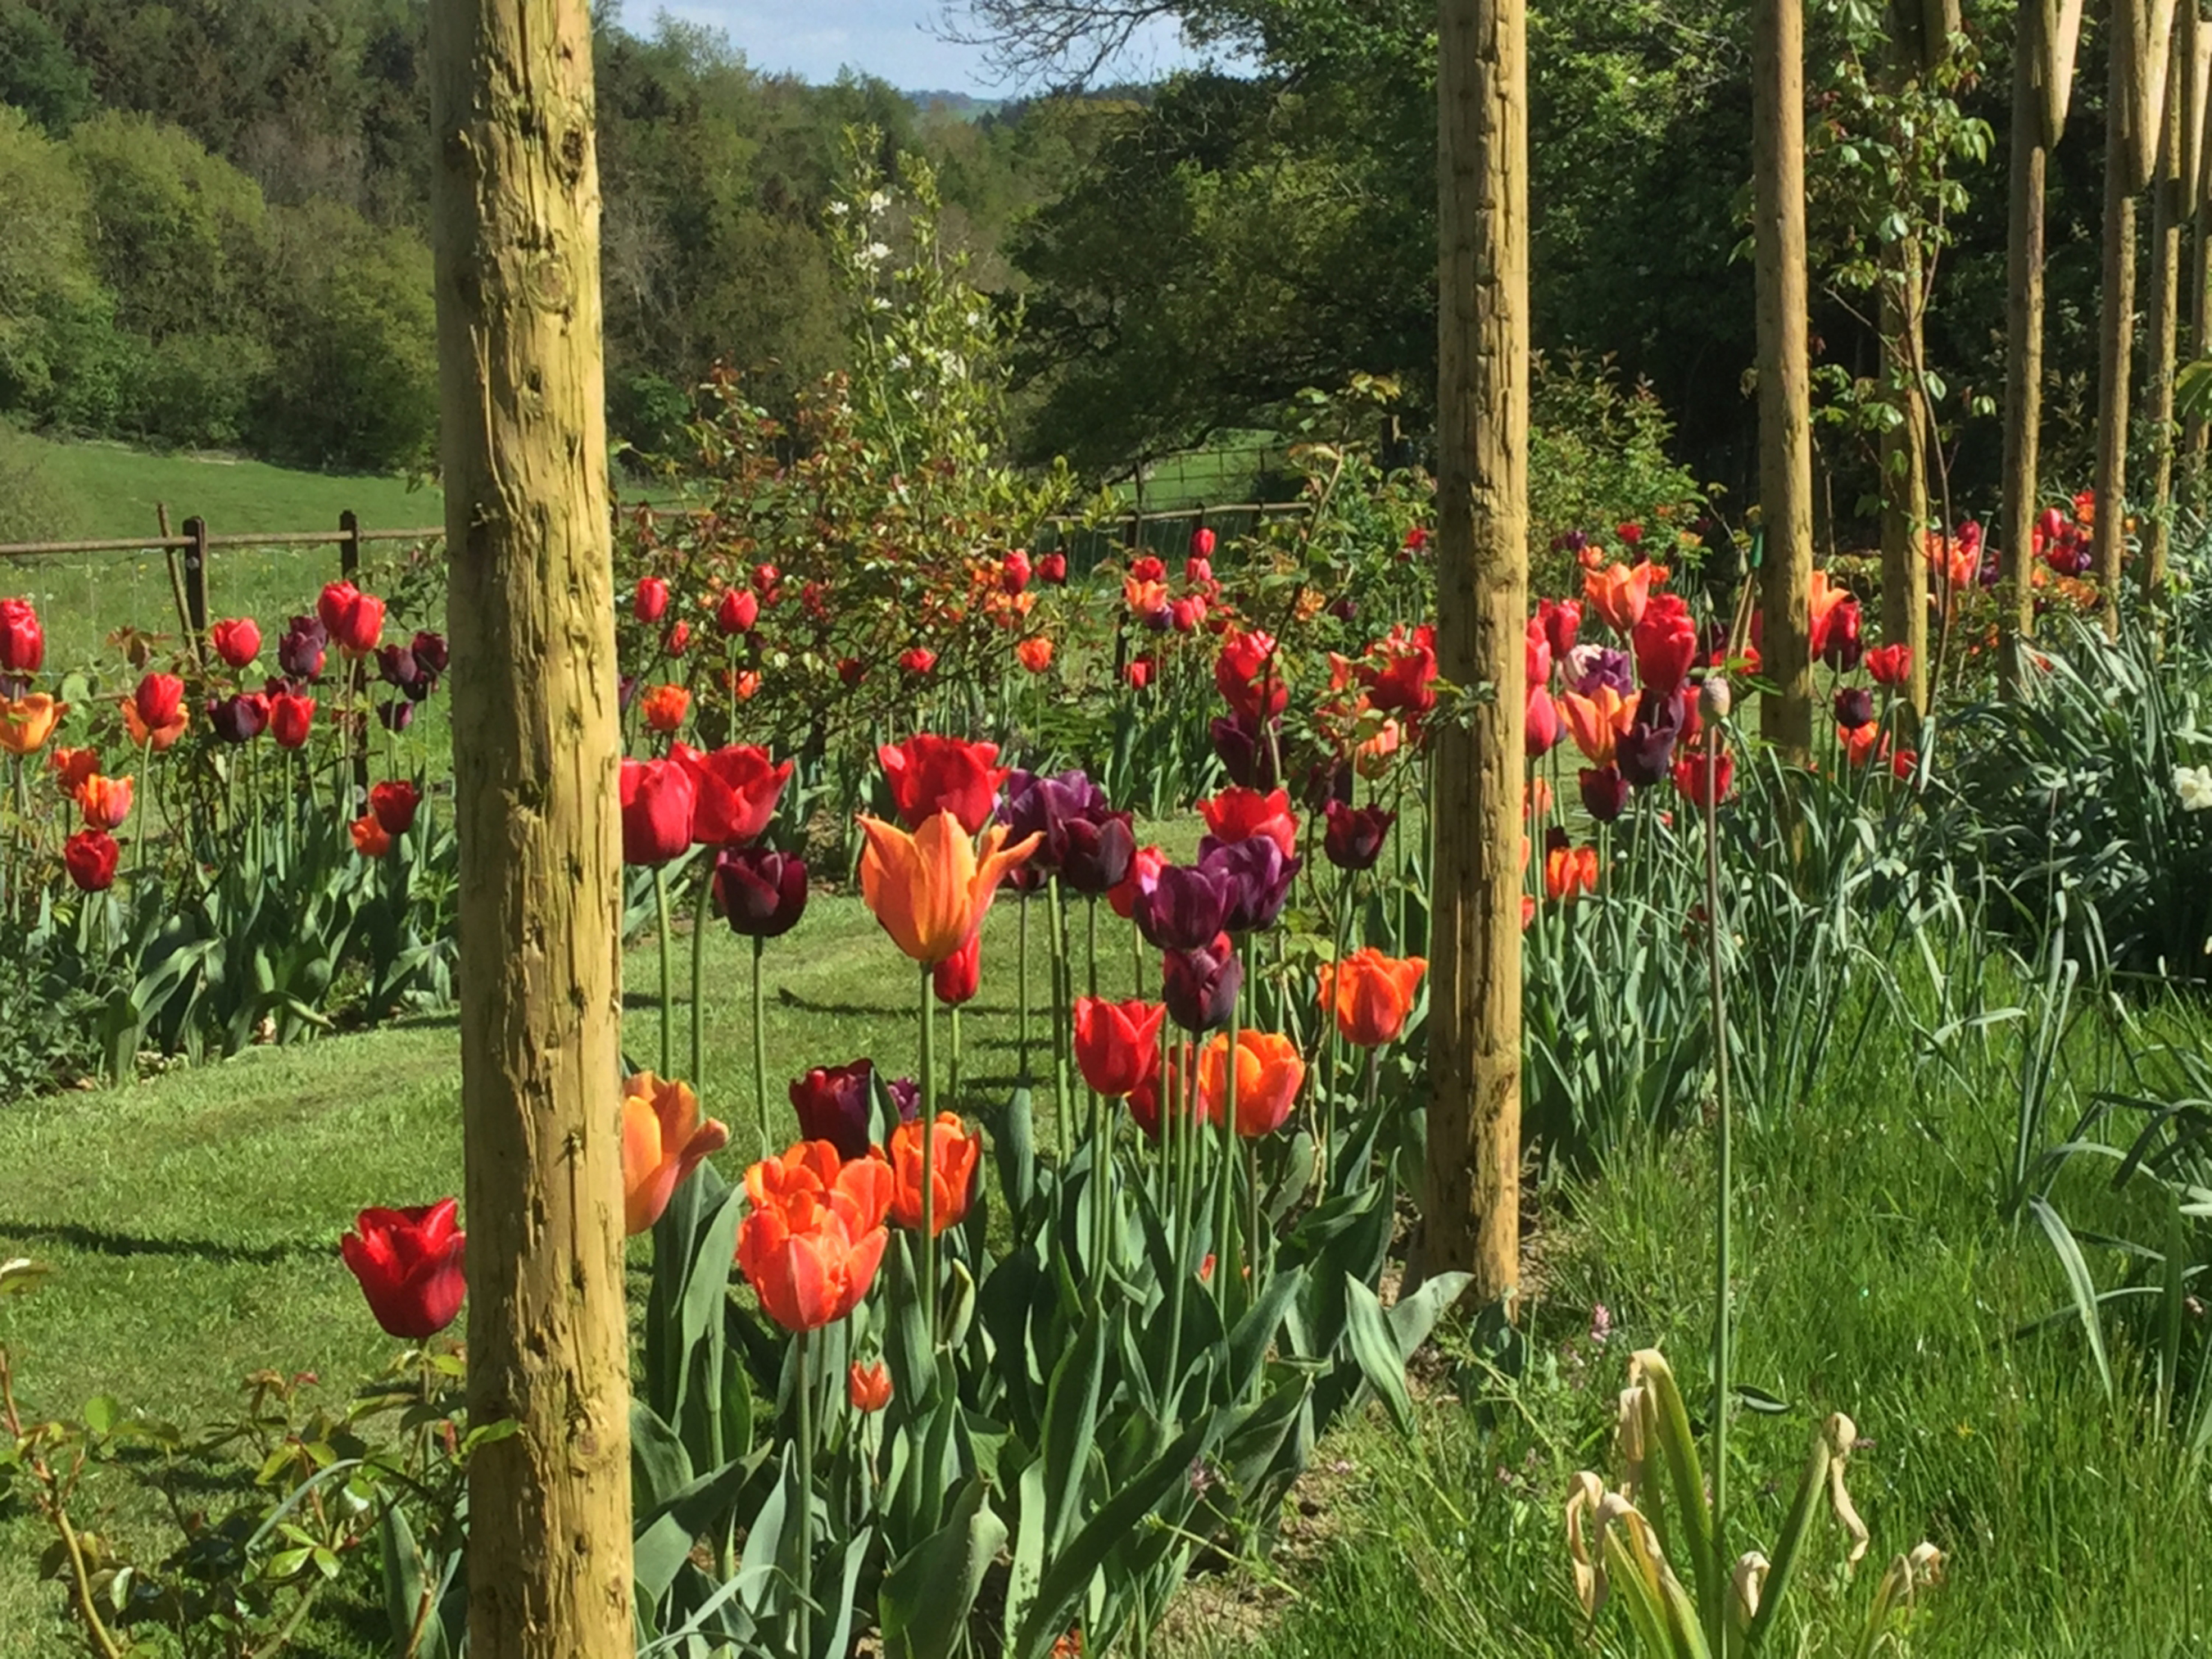 Rows of red tulips at Gorsty House (Gorsty House/National Garden Scheme/PA)